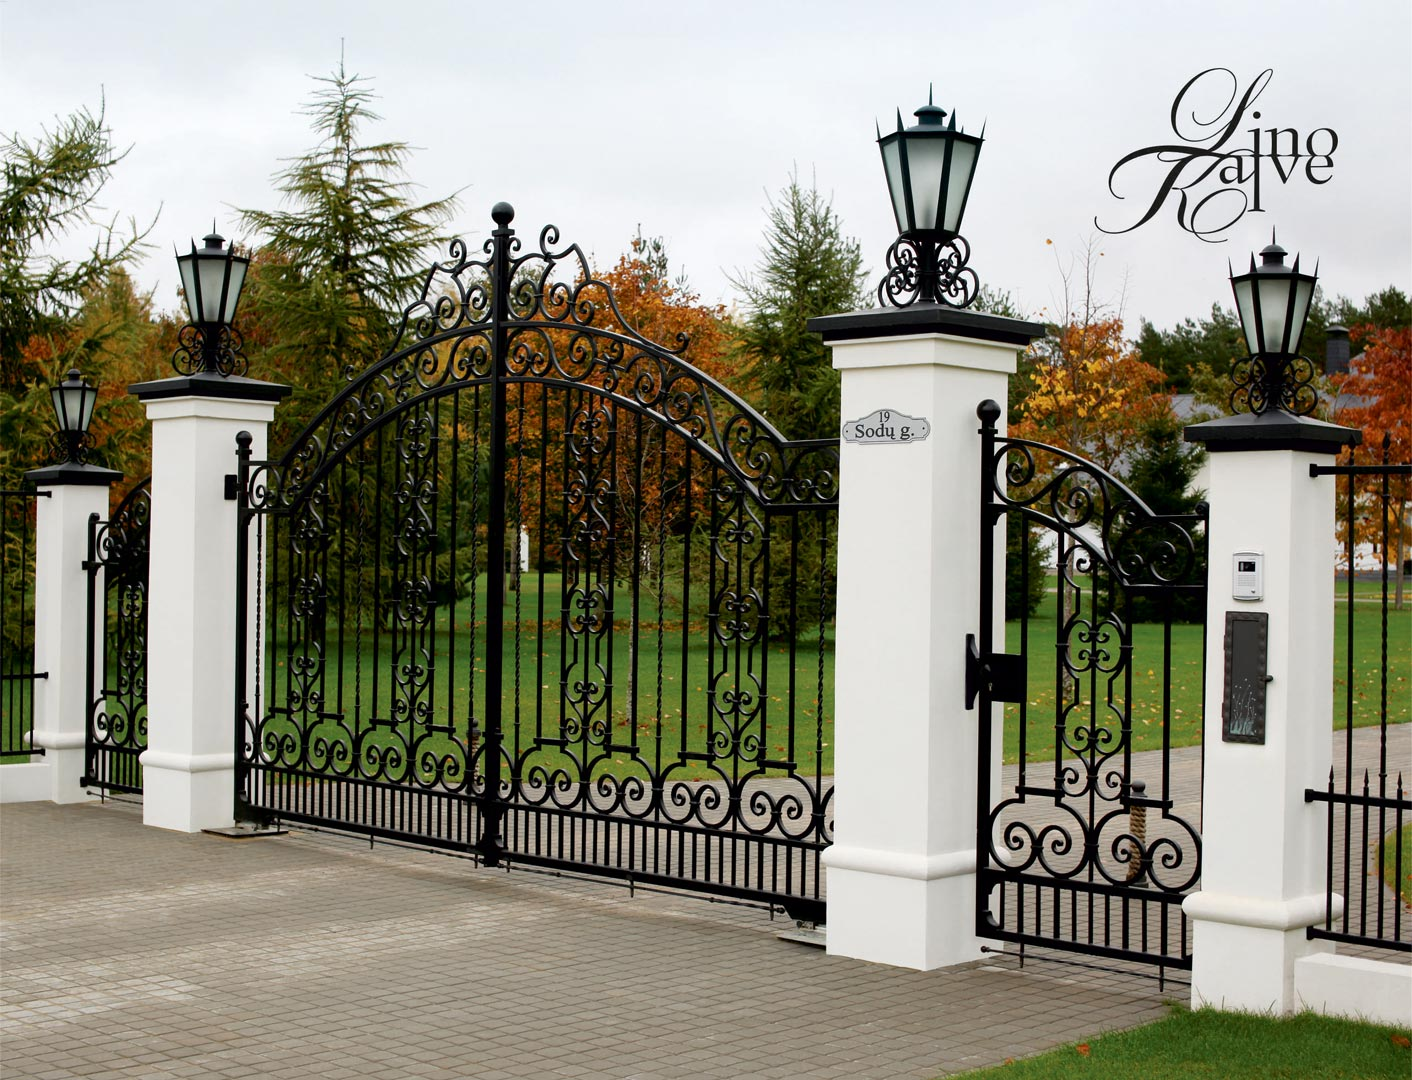 GATES, FENCE AND LIGHTS.